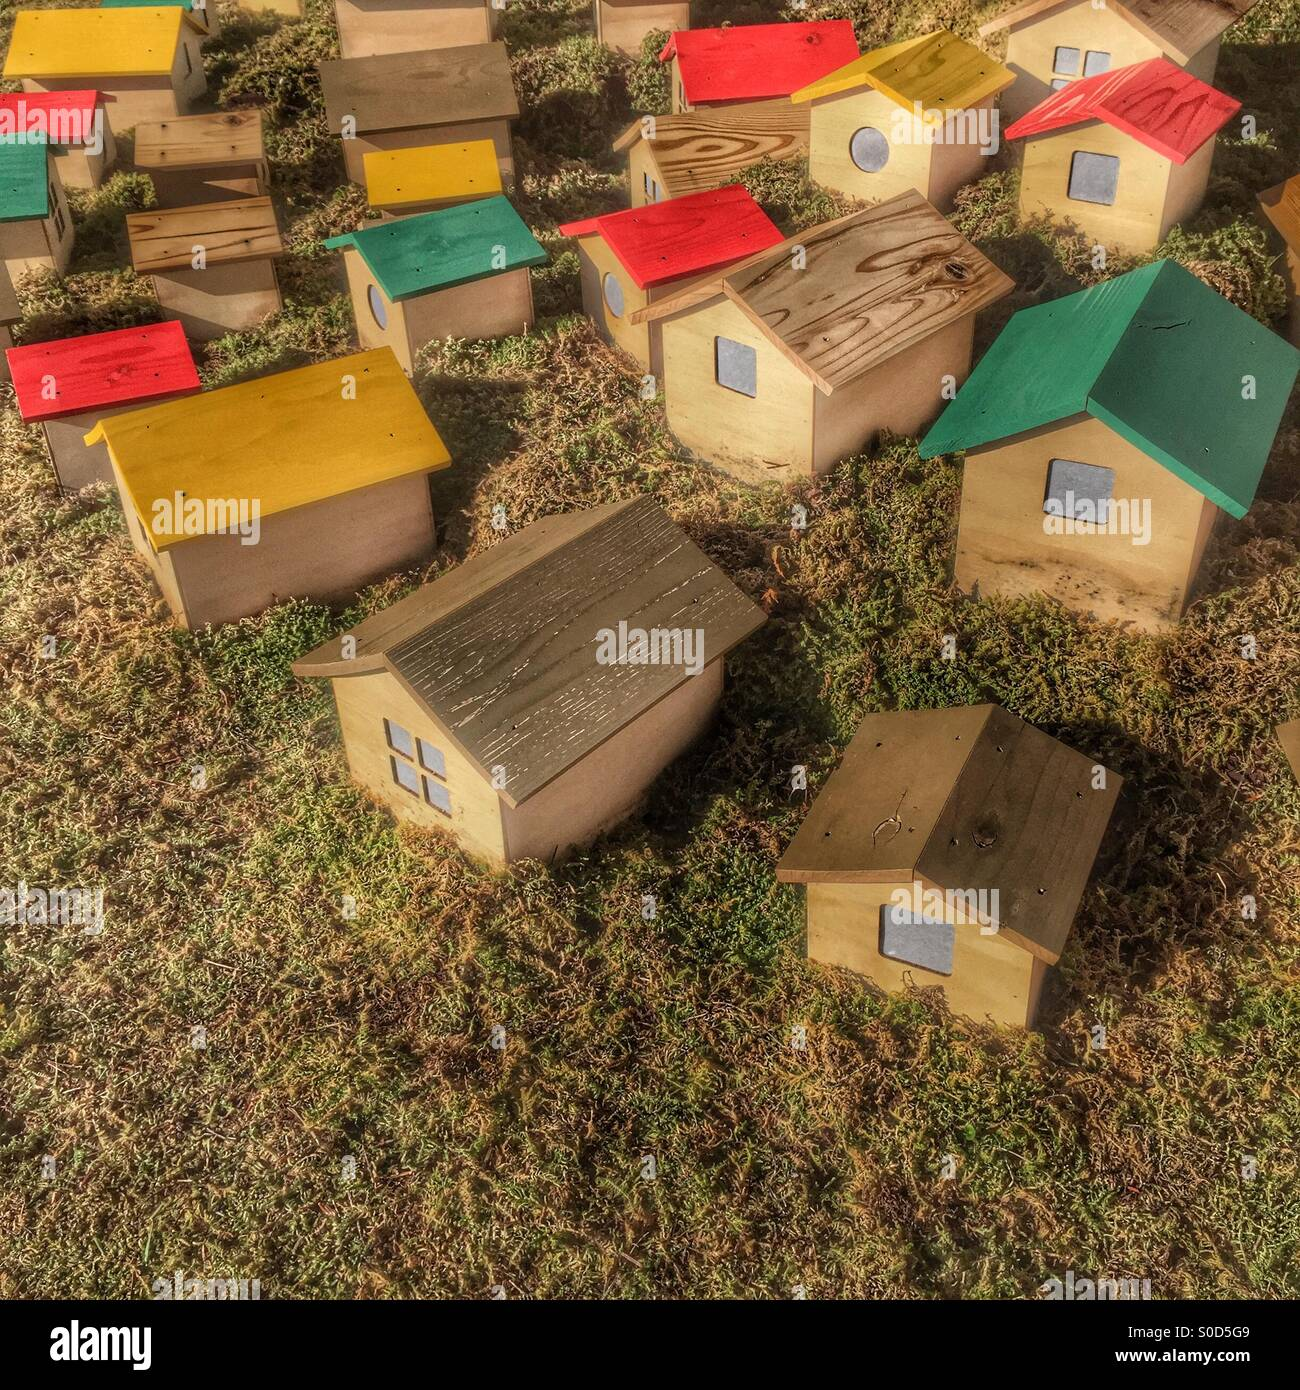 Miniature wooden houses with red, yellow, green and natural wood pattern roofs on grass lawn.Stock Photo